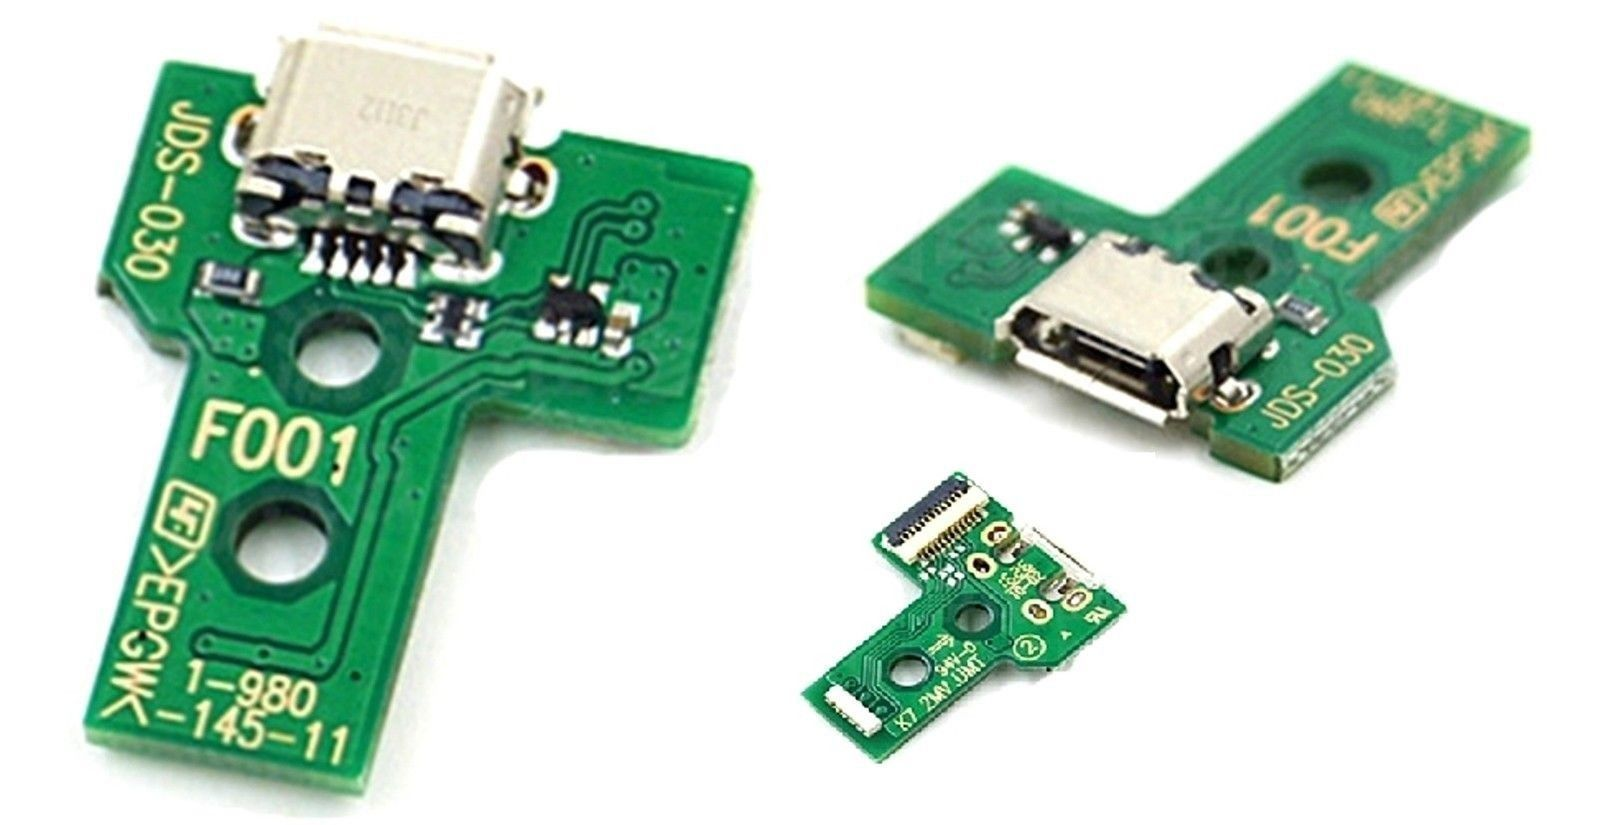 Pin By Assavamet Patike On The Best Shopping In Netherlands Usb Controller Schematic Ps4 Charging Socket Port Circuit Board Jds 030 F001 V1 12 Check